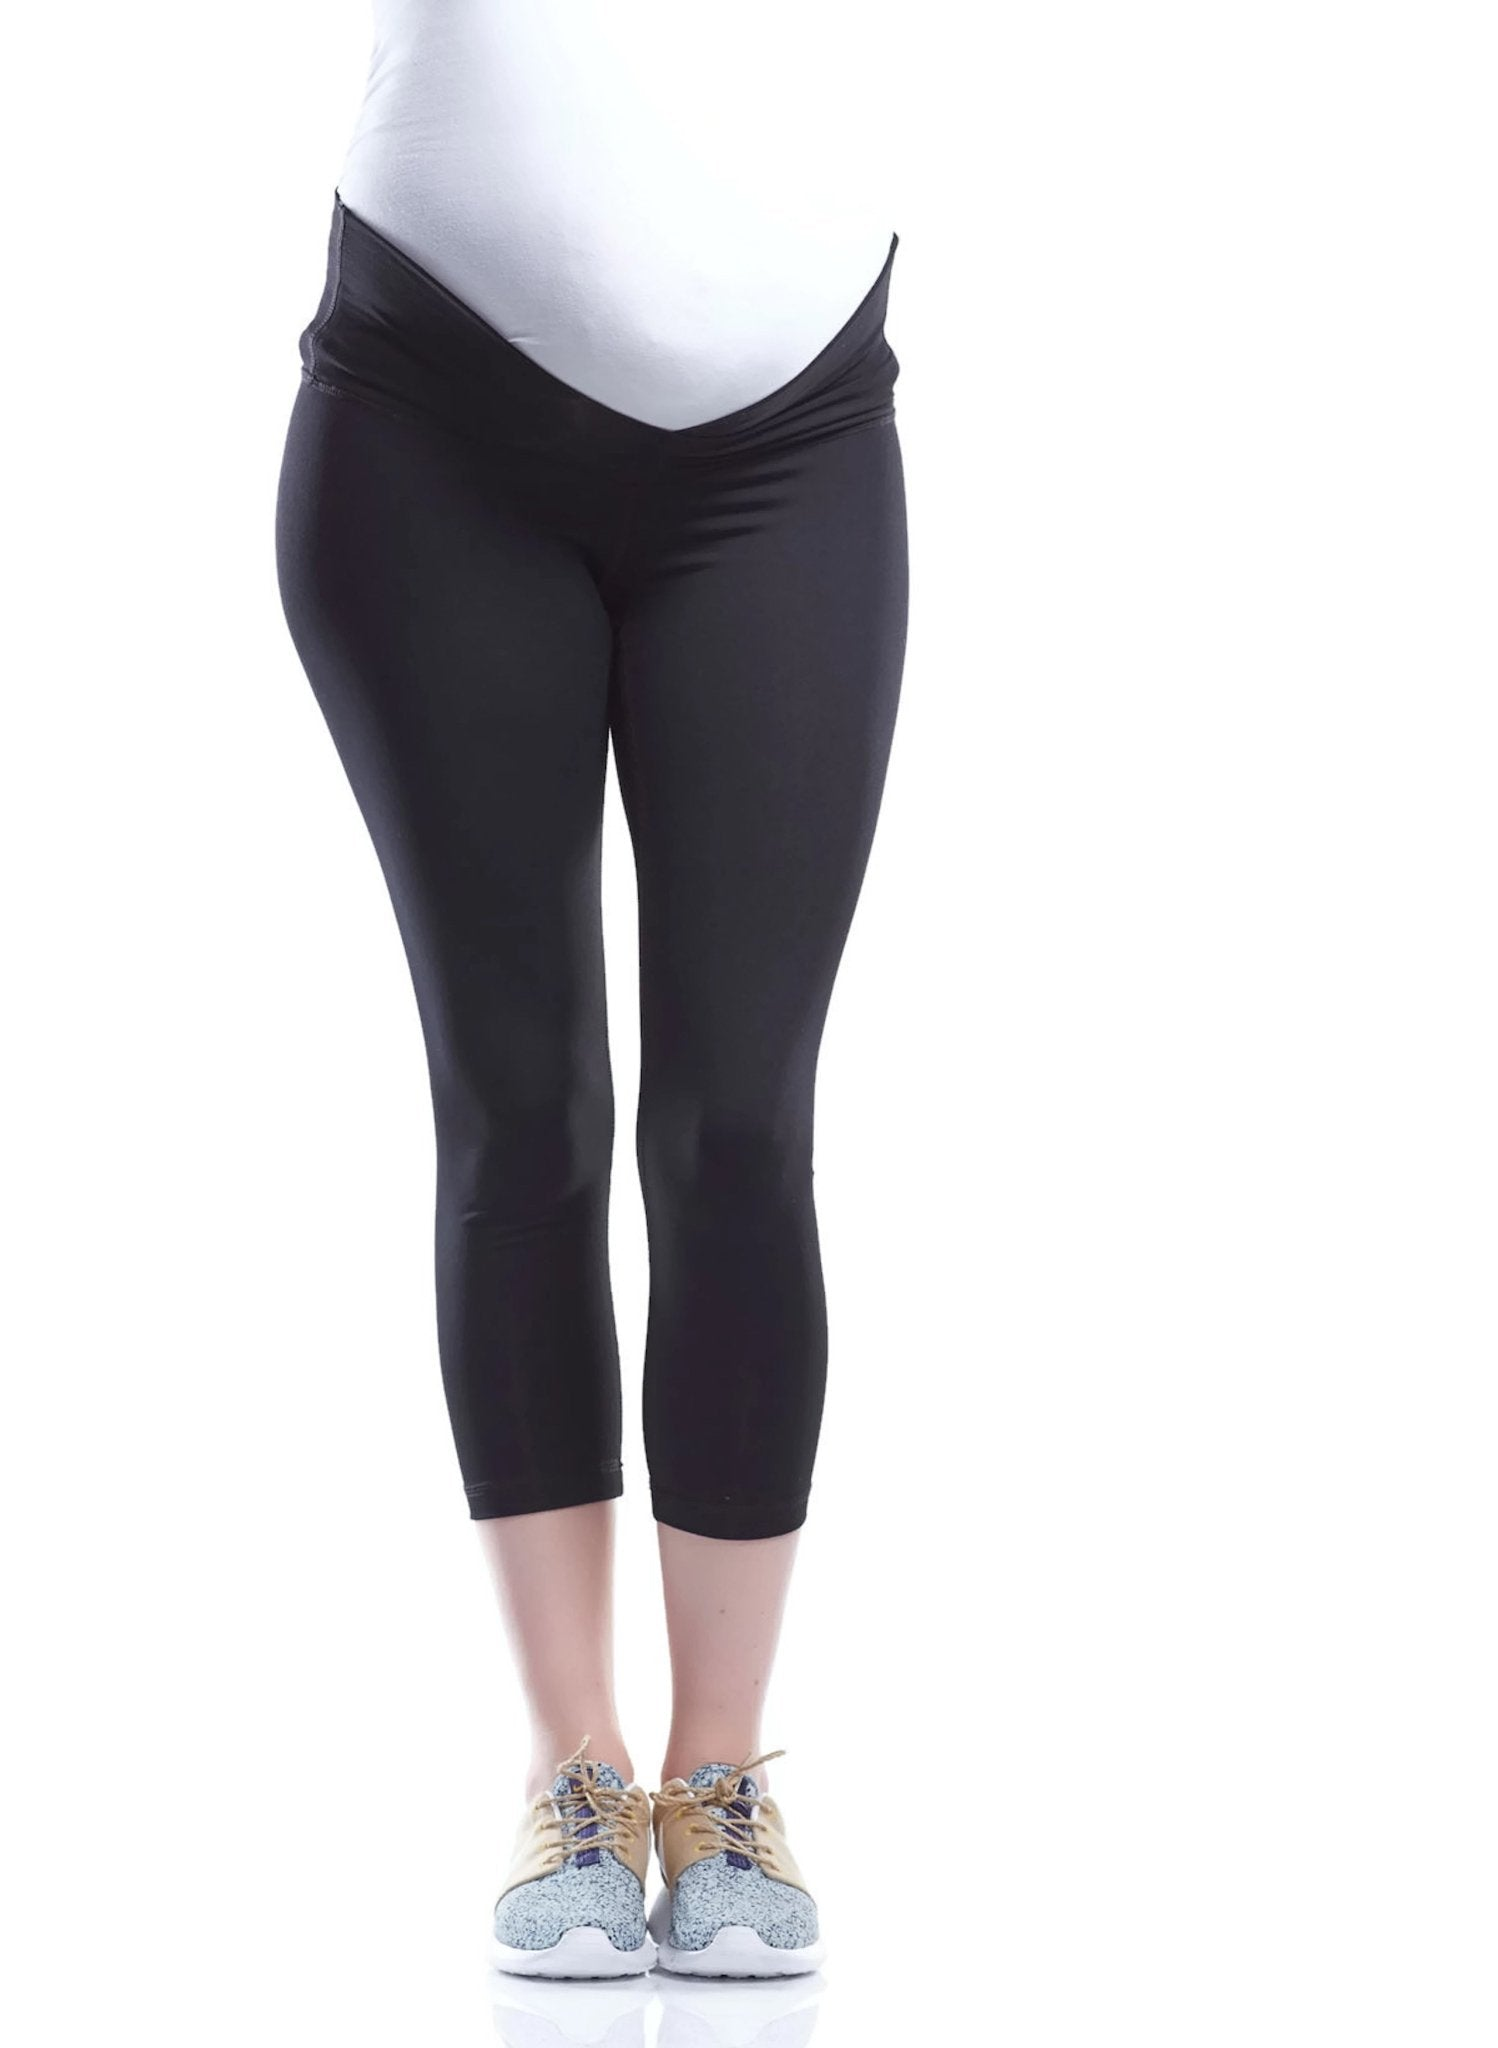 Sage 3/4 Active Maternity Legging - Black - Mums and Bumps